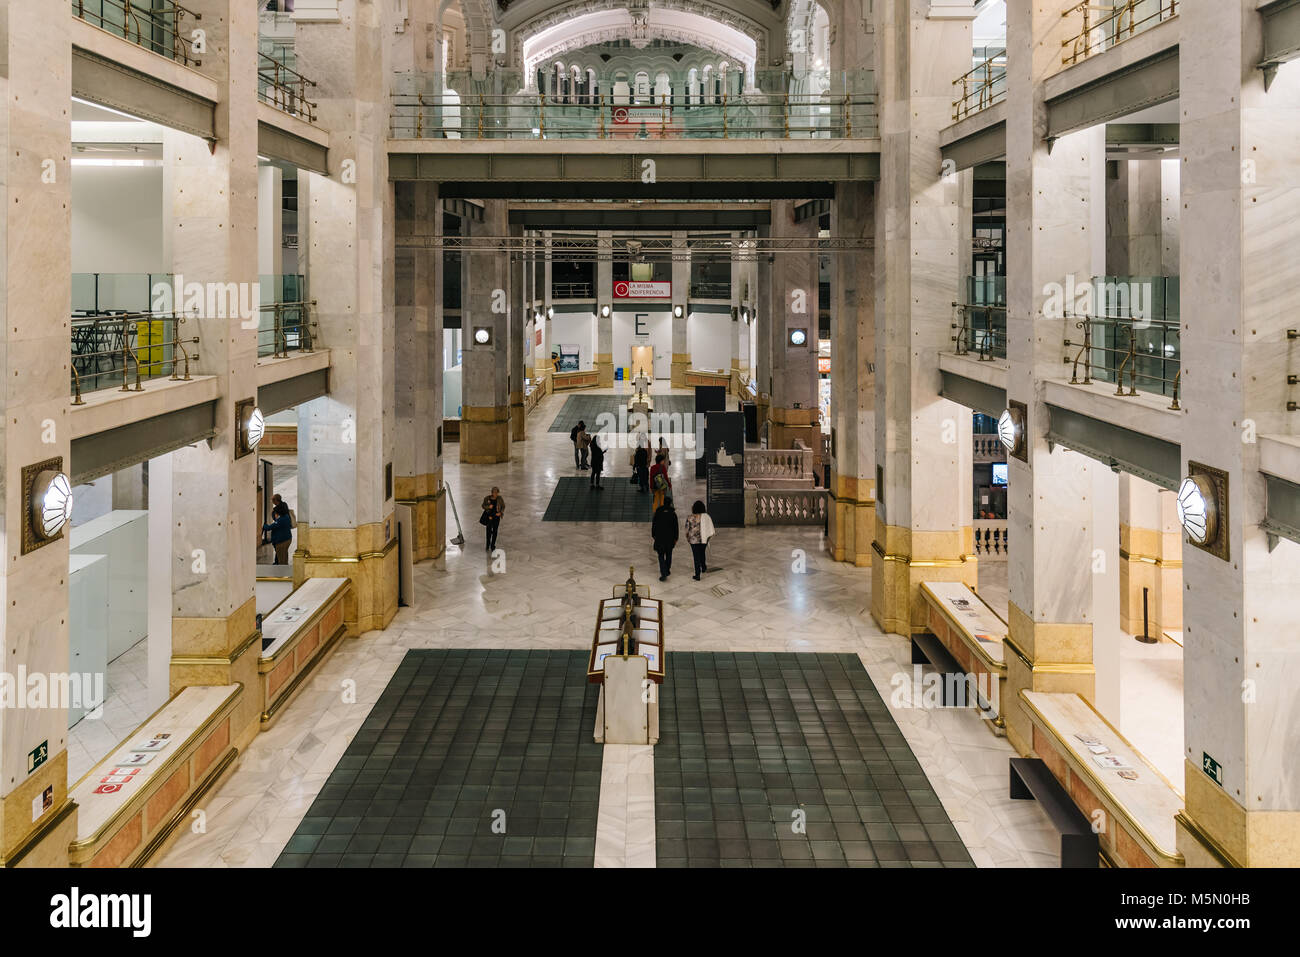 Madrid, Spain - November 3, 2017:  Interior view of Centro Cibeles in the new City Hall of Madrid. Located in the Stock Photo